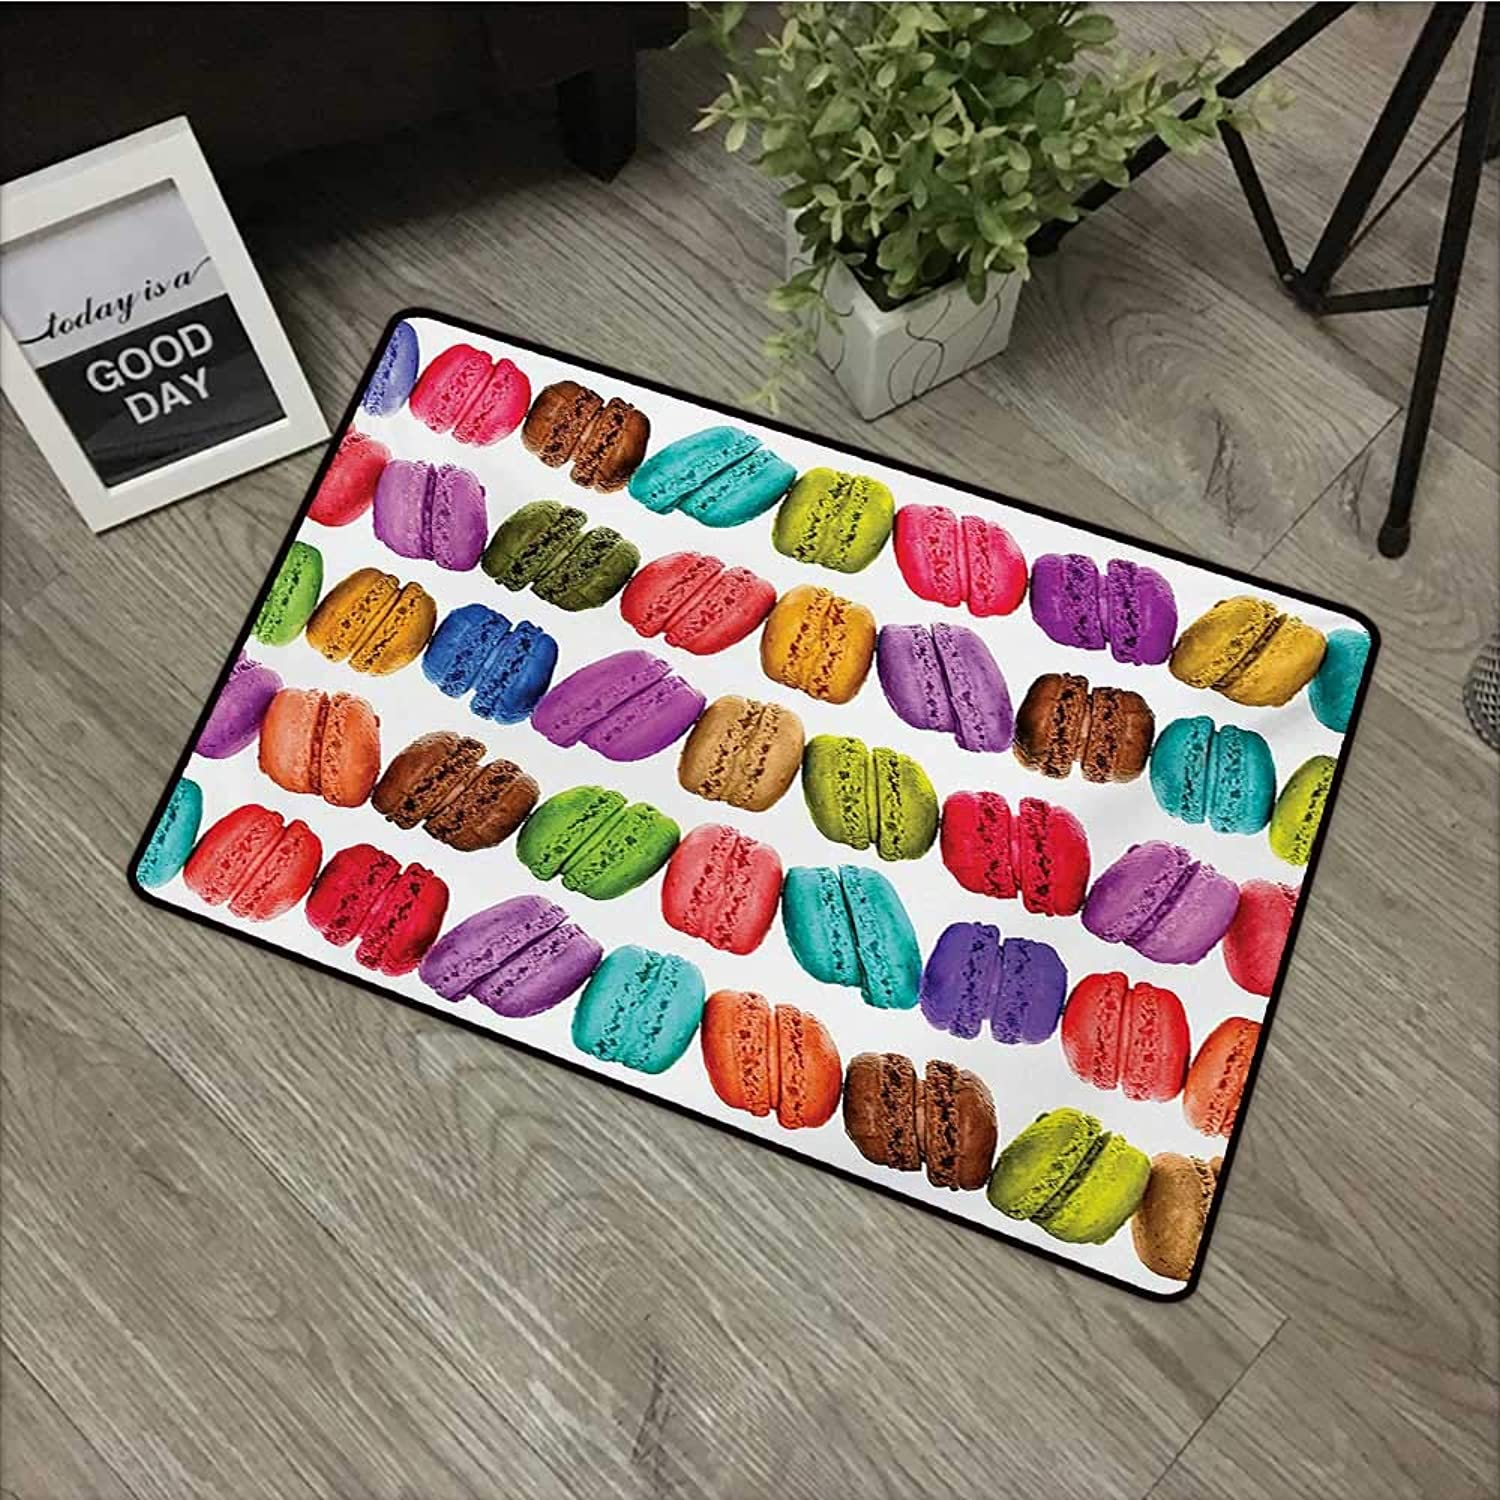 Hall mat W35 x L59 INCH colorful,French Macarons in a Row Coffee Shop Cookies Flavours Pastry Bakery Food Design,Multicolor Non-Slip, with Non-Slip Backing,Non-Slip Door Mat Carpet